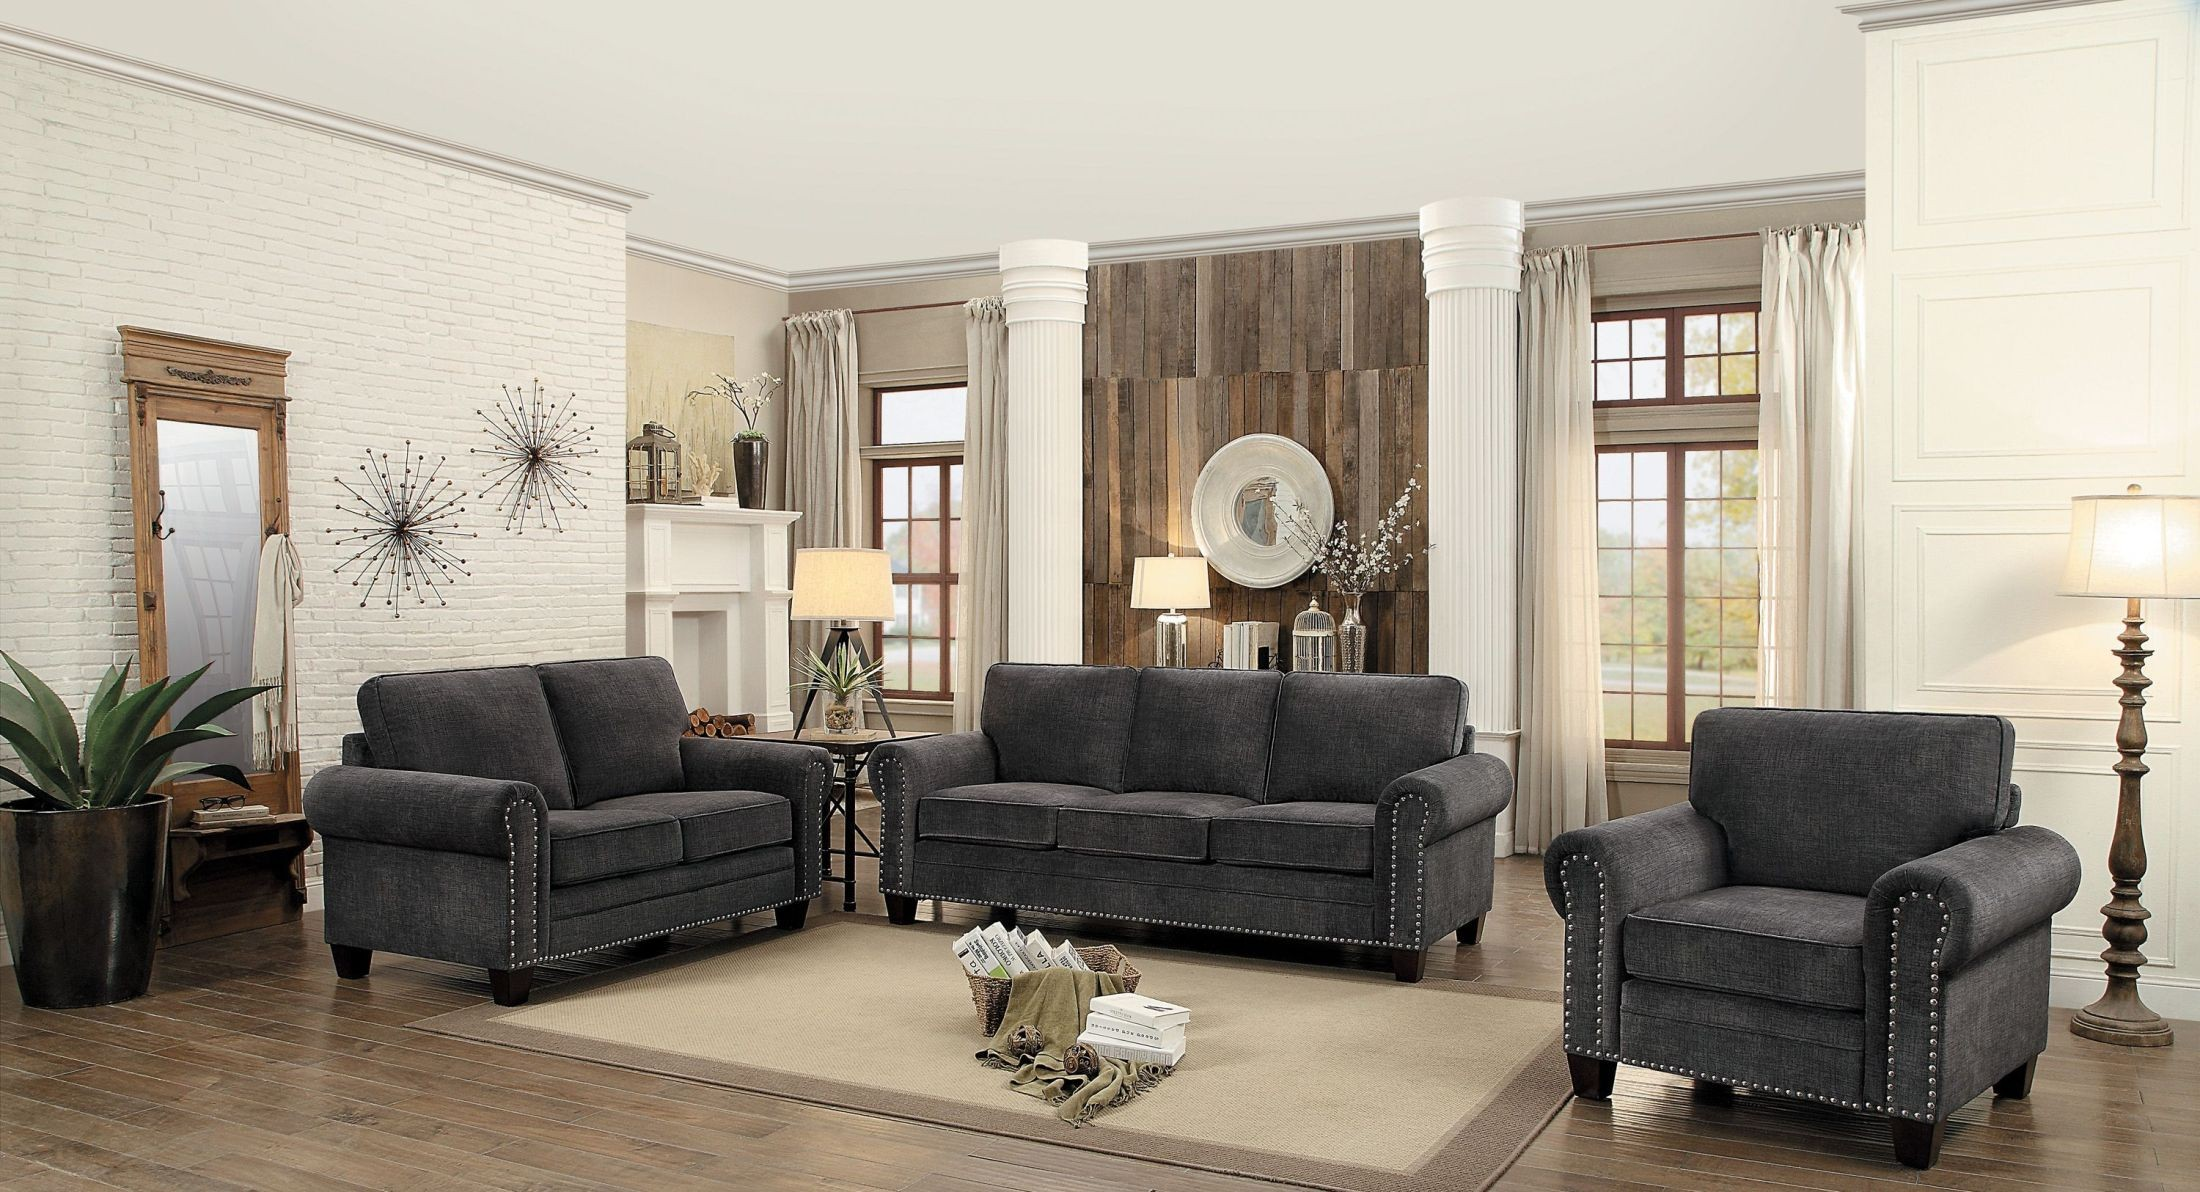 cornelia dark grey living room set from homelegance coleman furniture. Black Bedroom Furniture Sets. Home Design Ideas